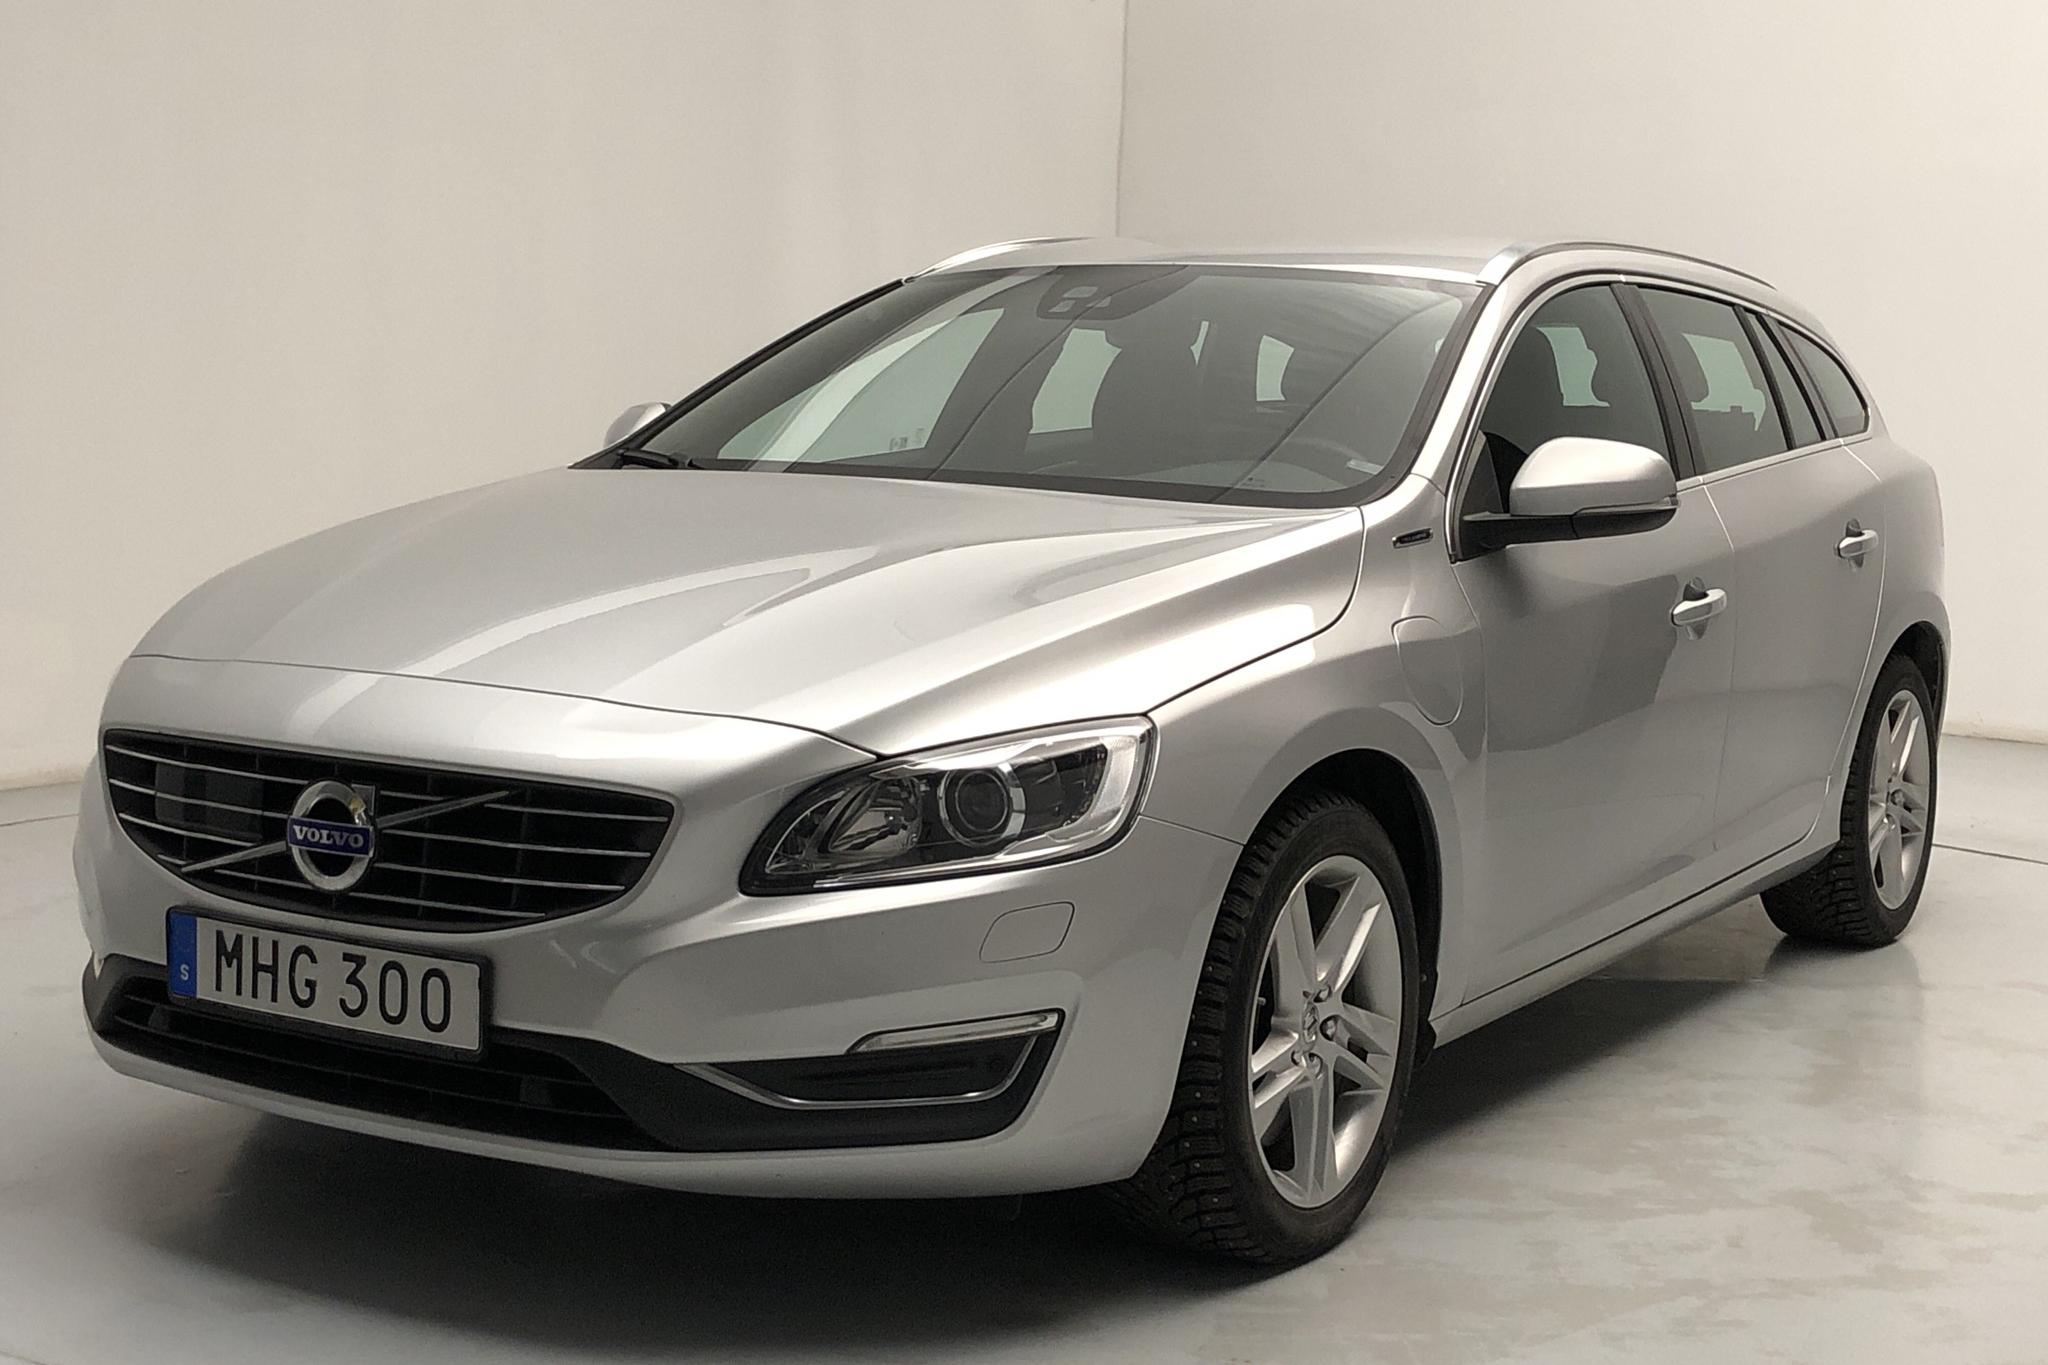 Volvo V60 D5 AWD Twin Engine (163hk) - 8 699 mil - Automat - silver - 2018